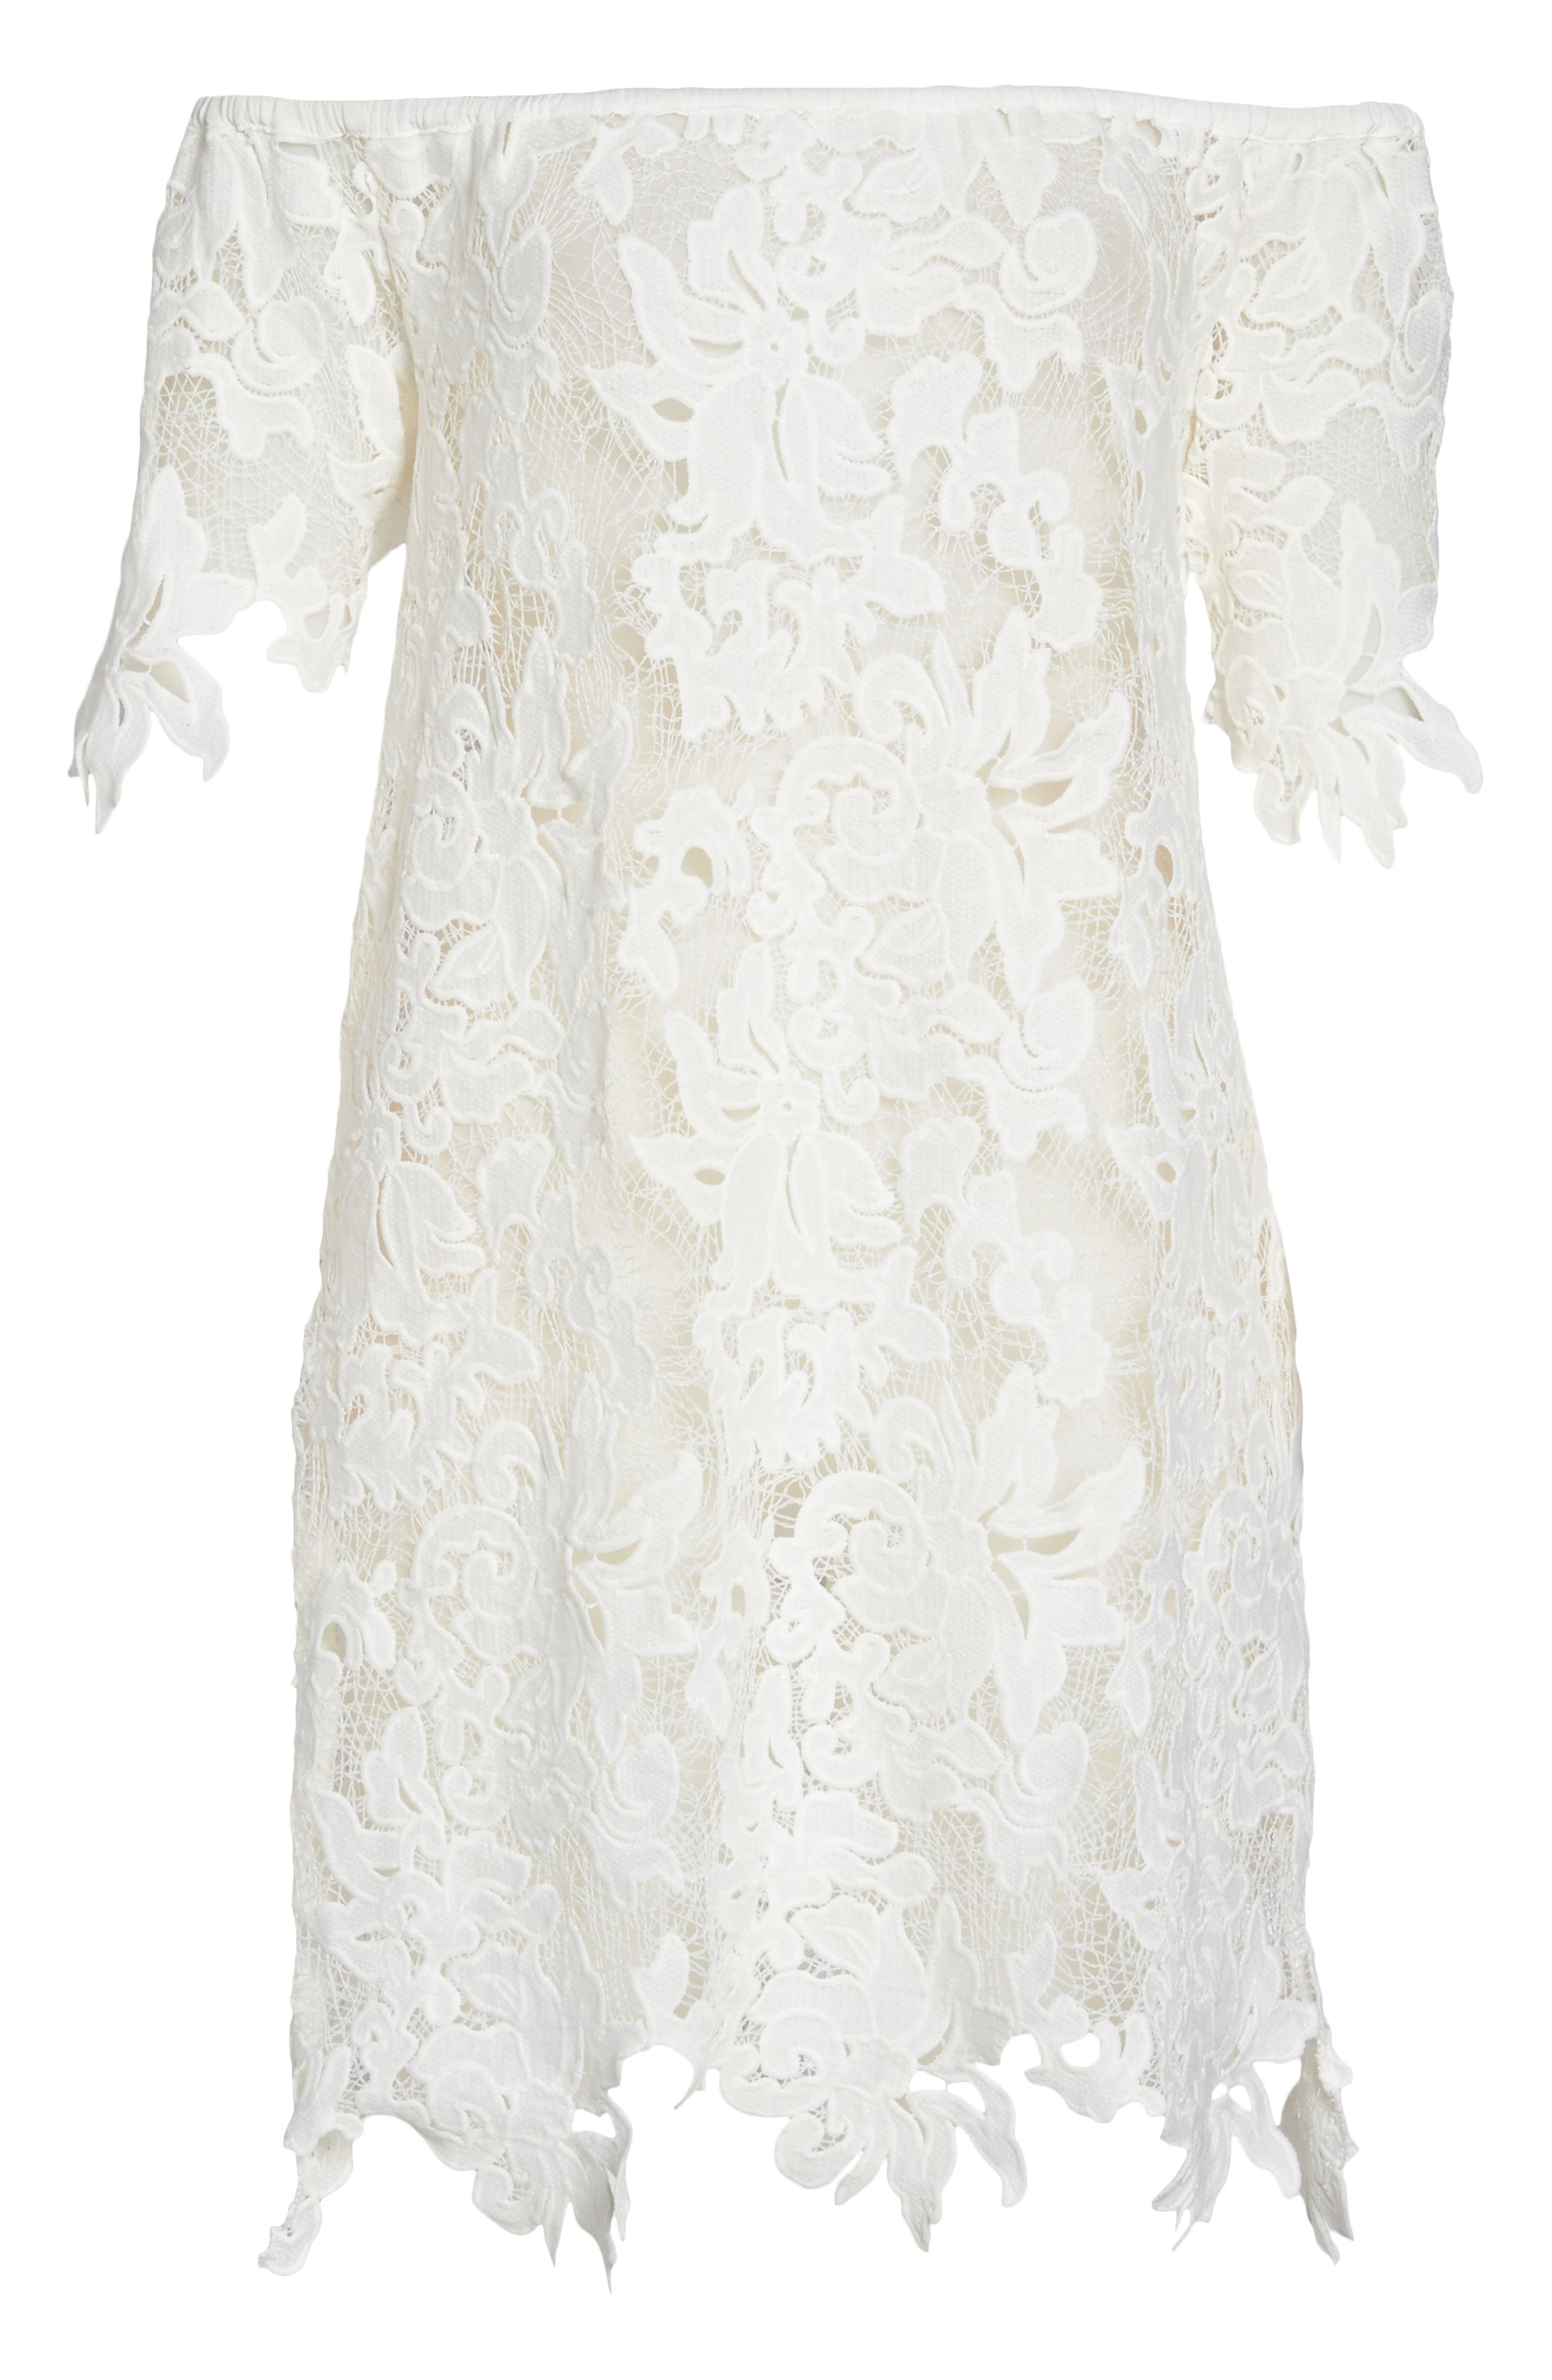 Ode Rosette Lace Cover-Up Dress,                             Alternate thumbnail 6, color,                             100